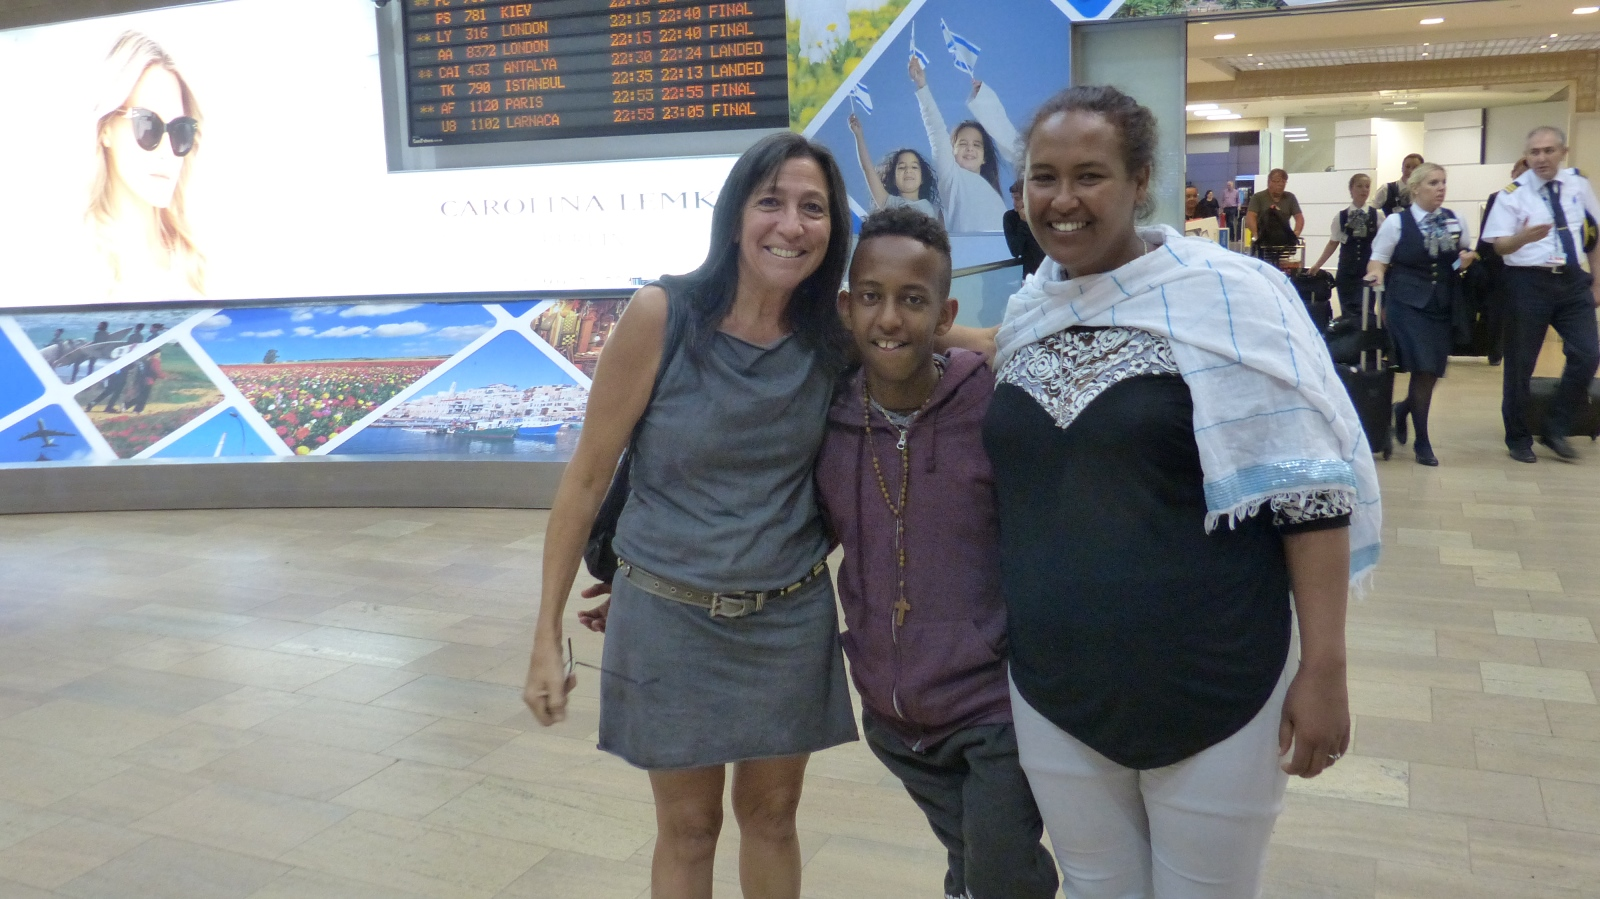 Lori Bacher meeting Nobel and his mom at Ben-Gurion International Airport, September 14, 2016. Photo by Doron Bacher